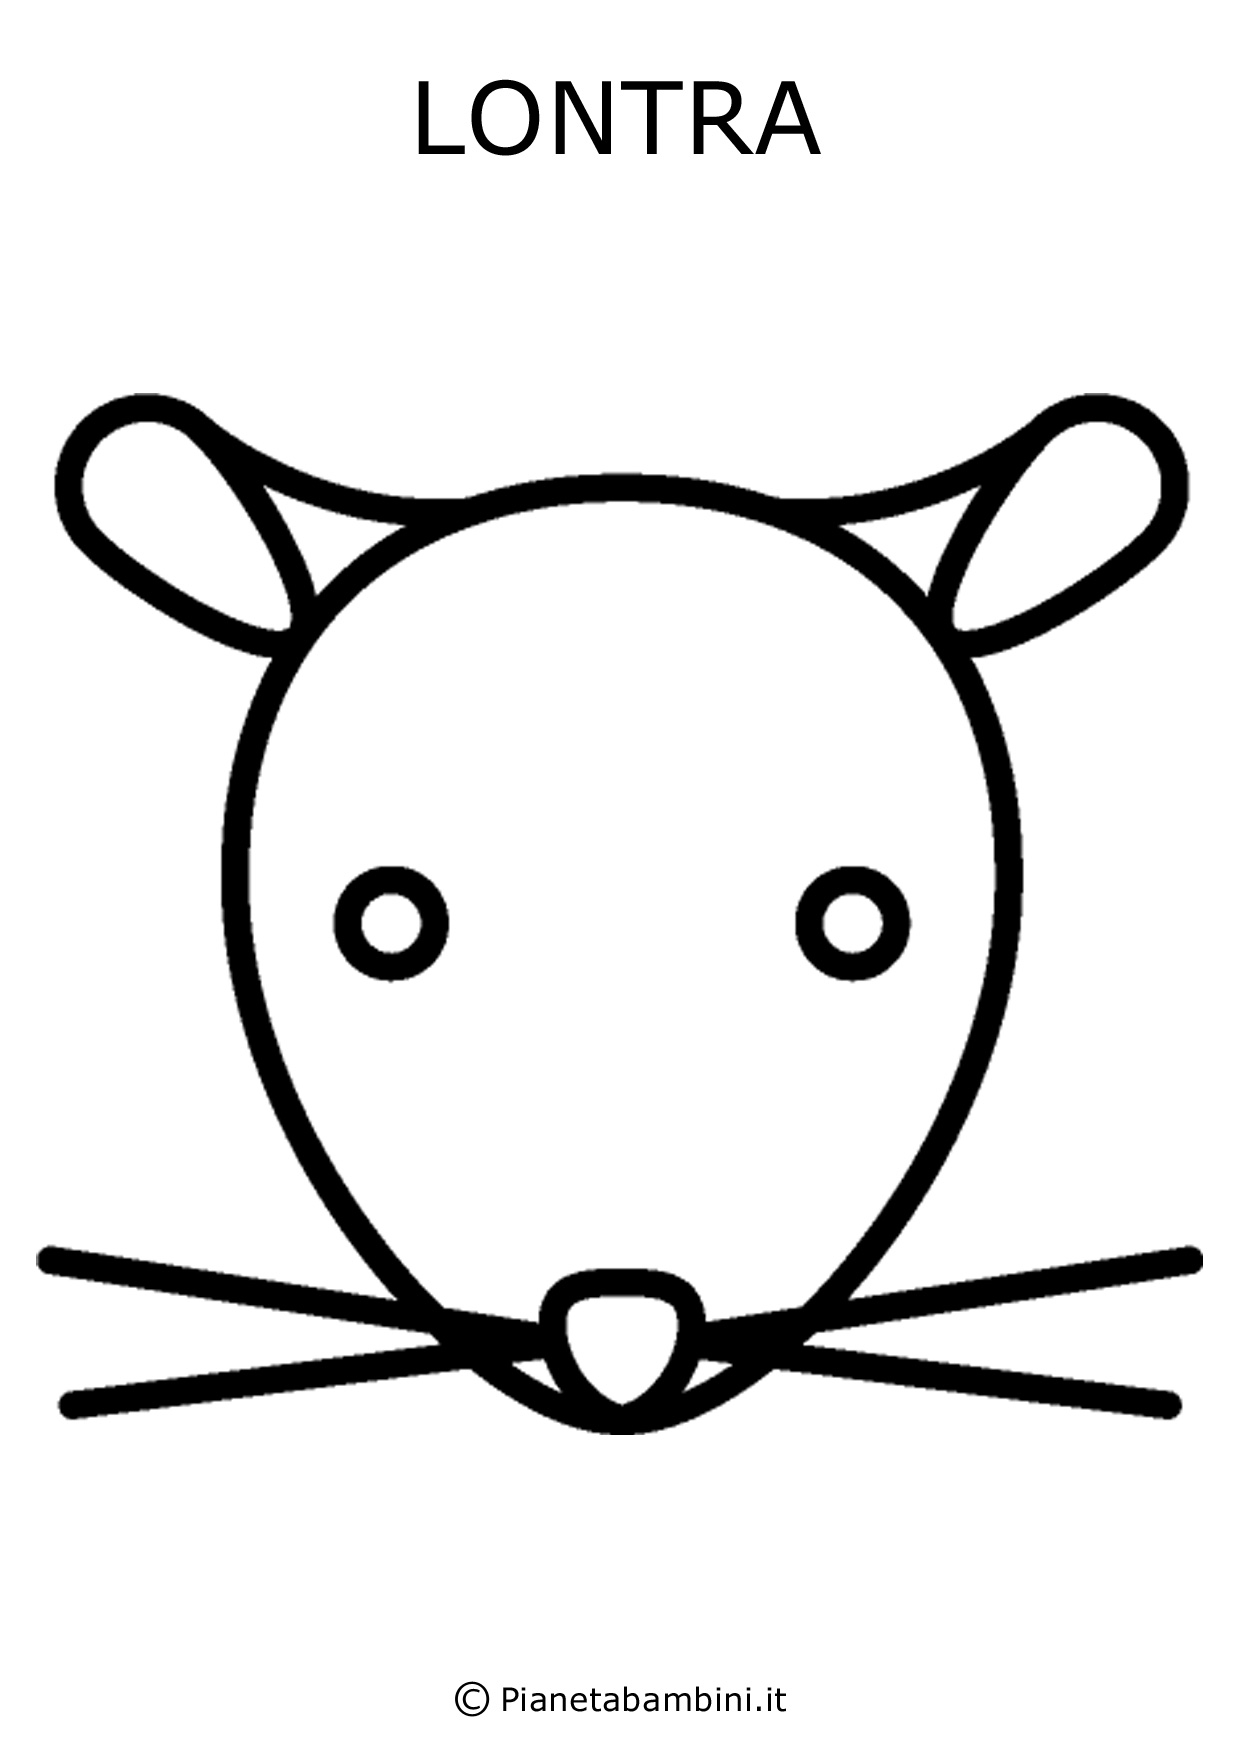 Jelly Belly Logo Coloring Pages Coloring Pages